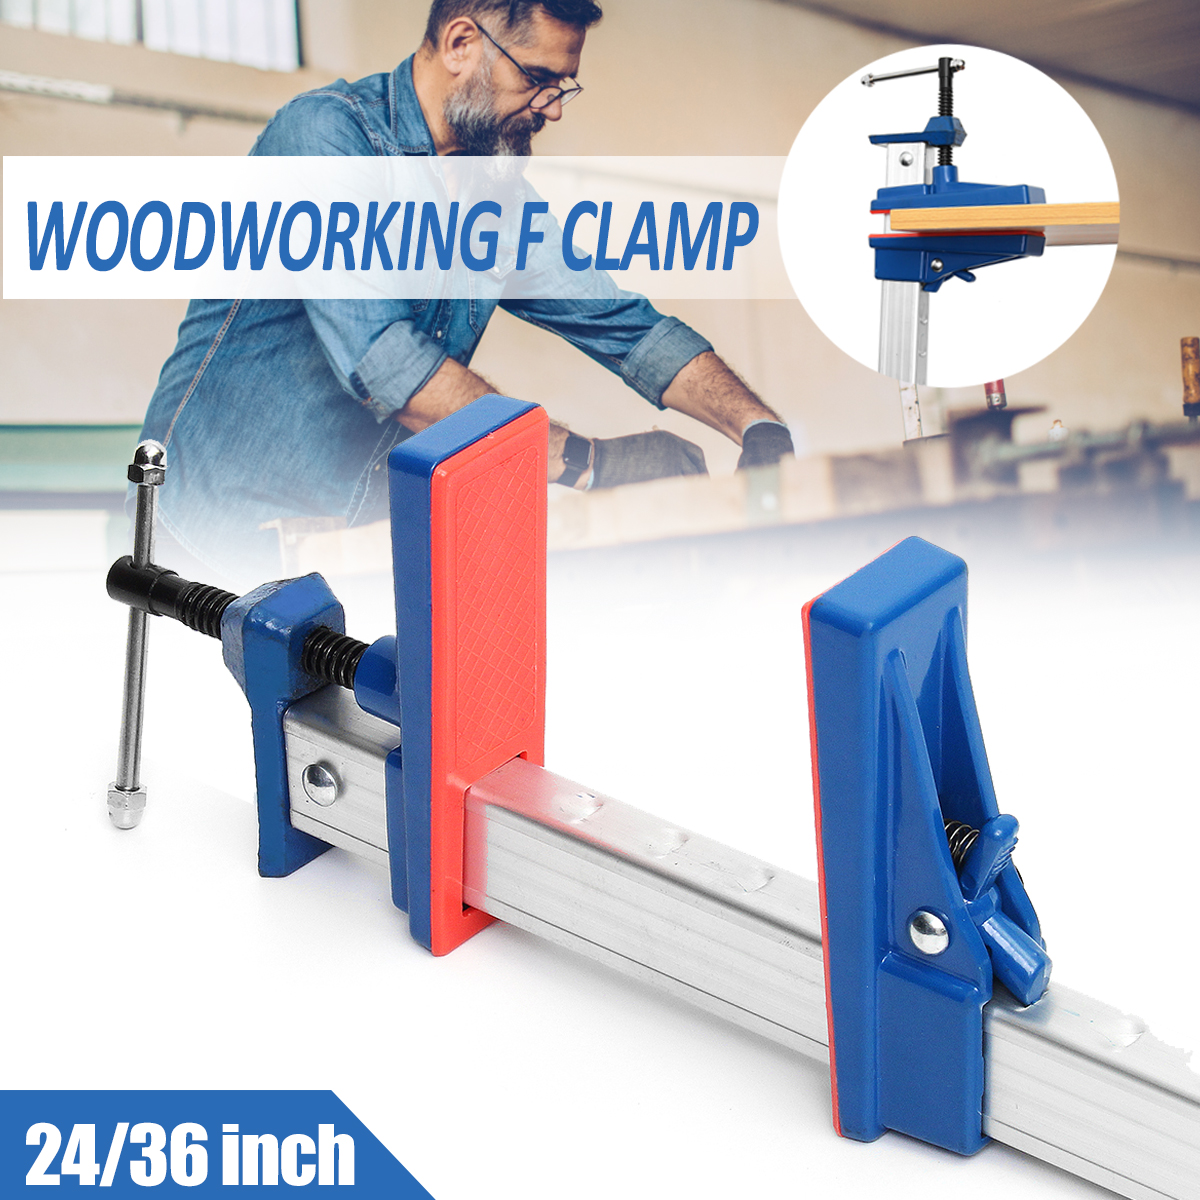 24/36 inch Heavy Duty F Clamps for Woodworking Clamp DIY T Bar Wood Clamps Quick Release Clip Wooden Board Holder Grip Hand Tool цена